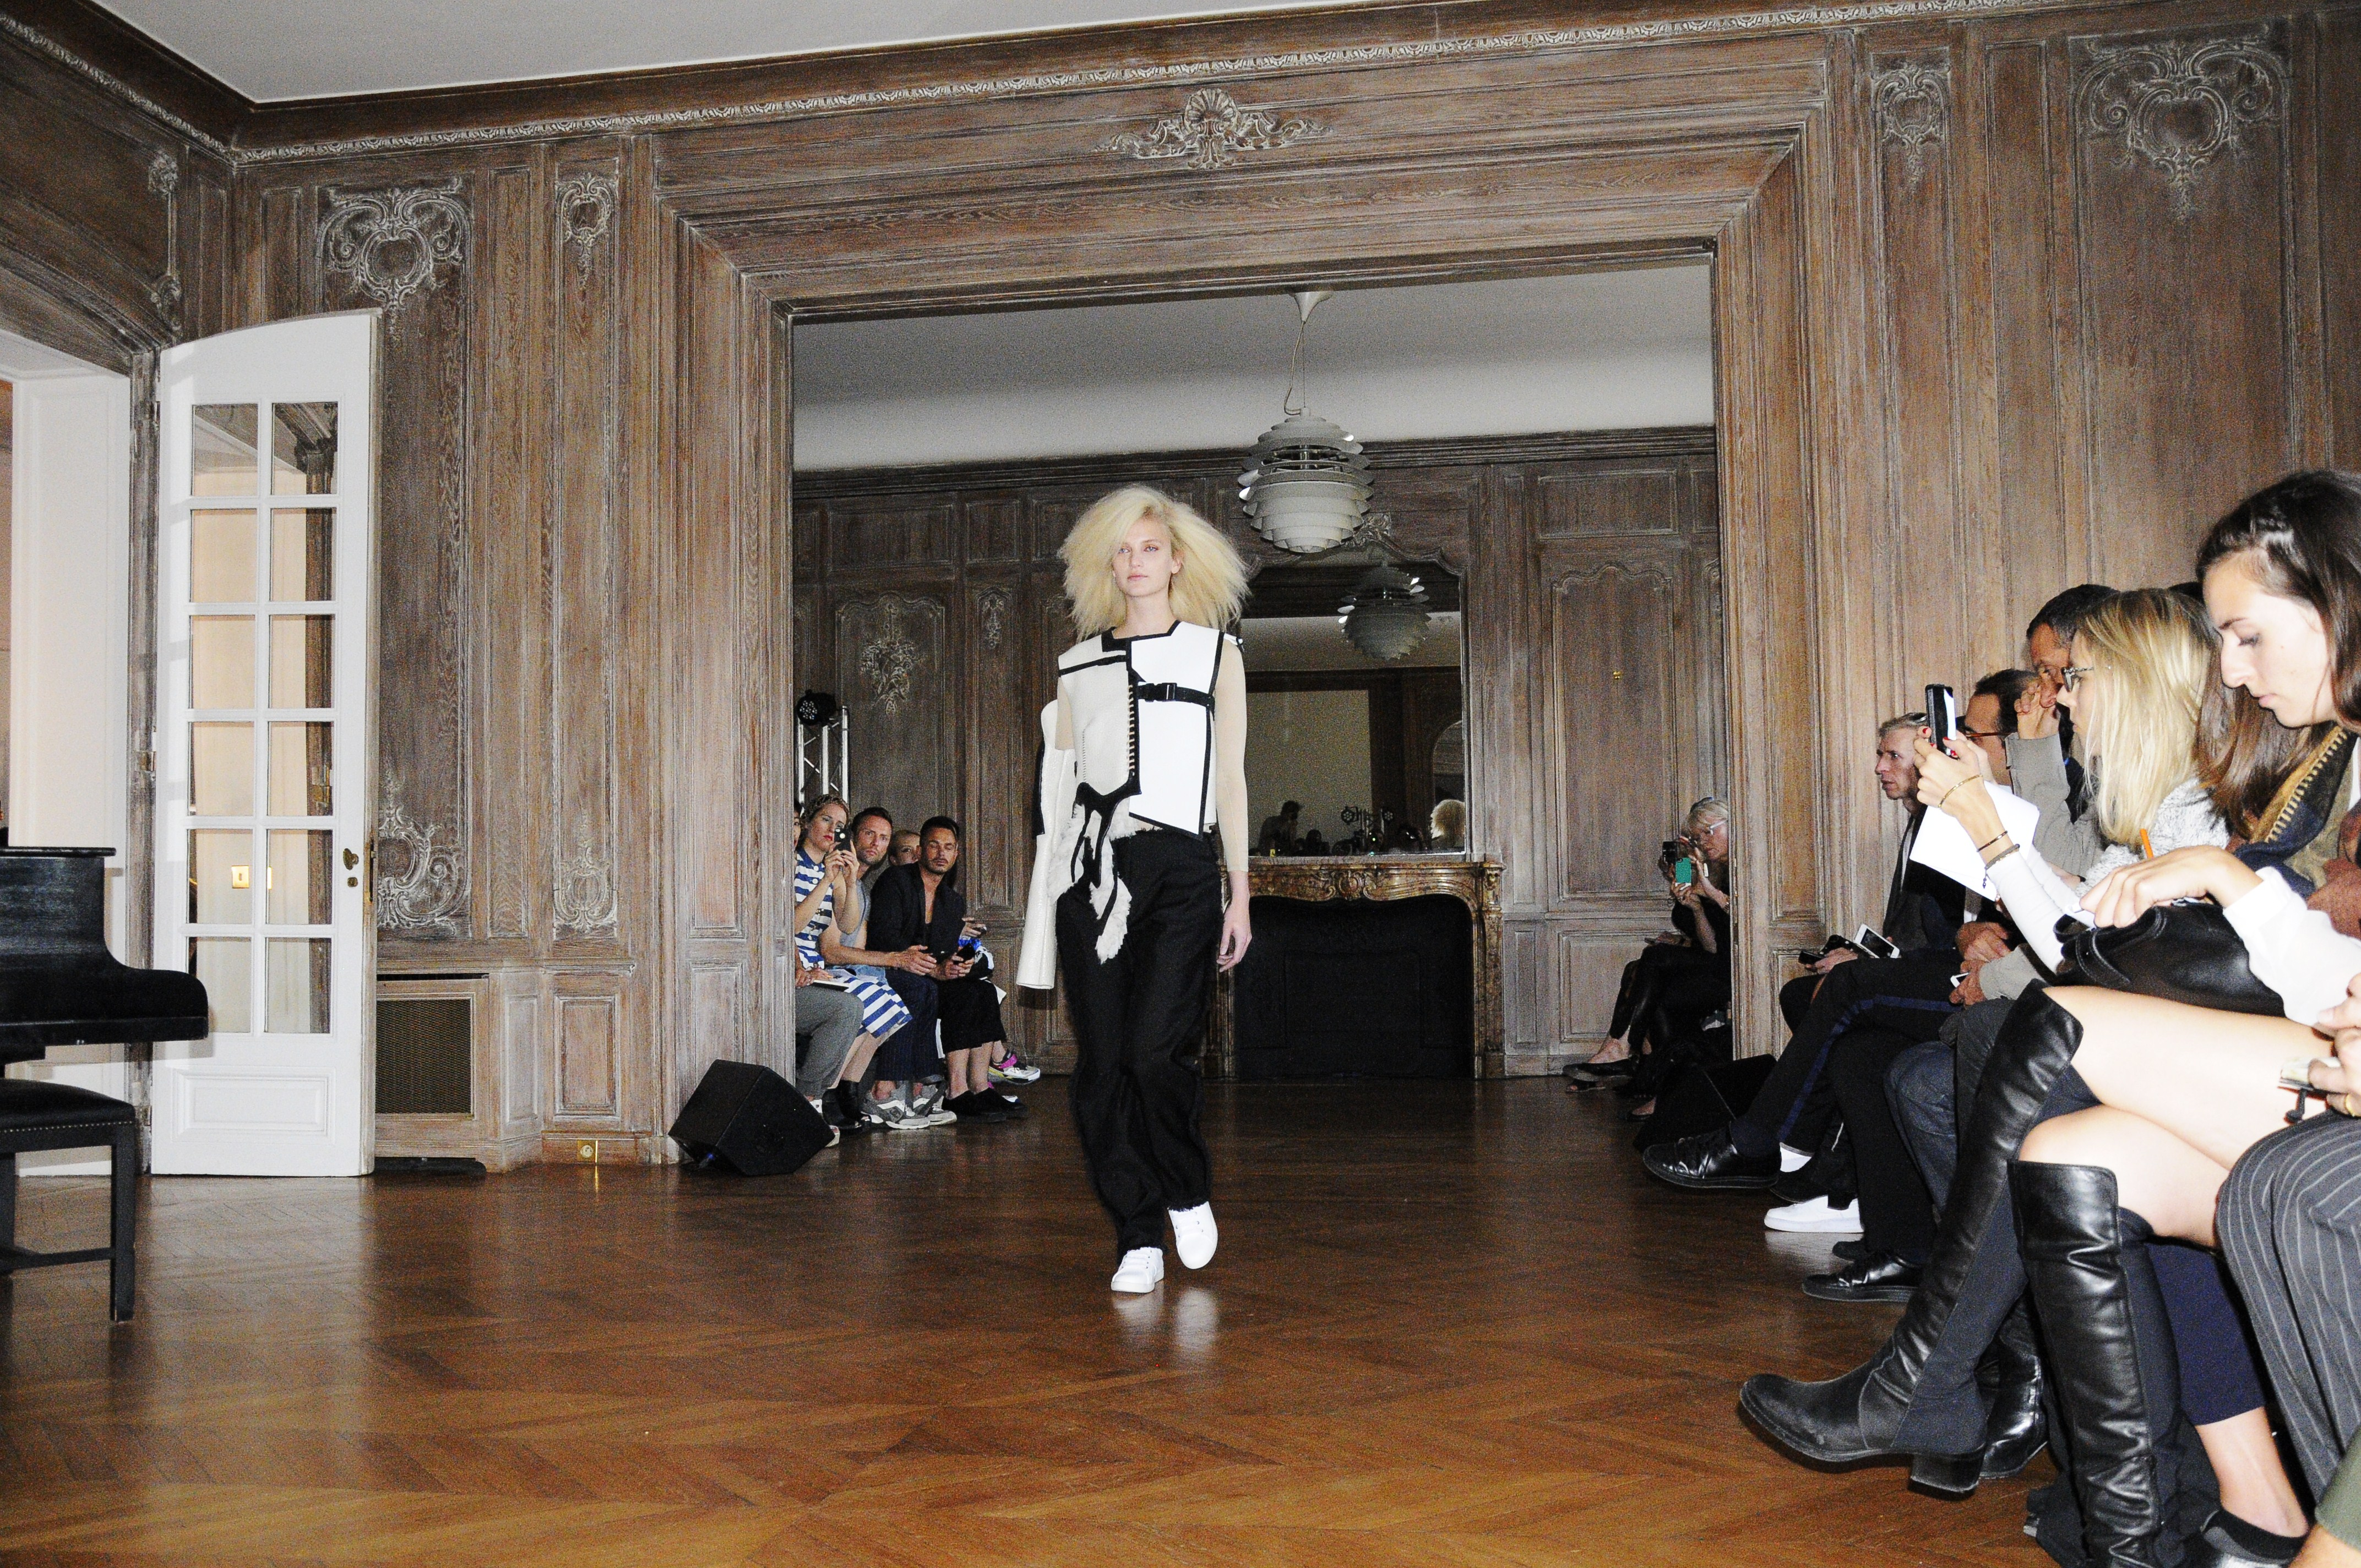 Anne Sofie Madsen catwalk by © Rocío Pastor Eugenio. ® WOMANWORD